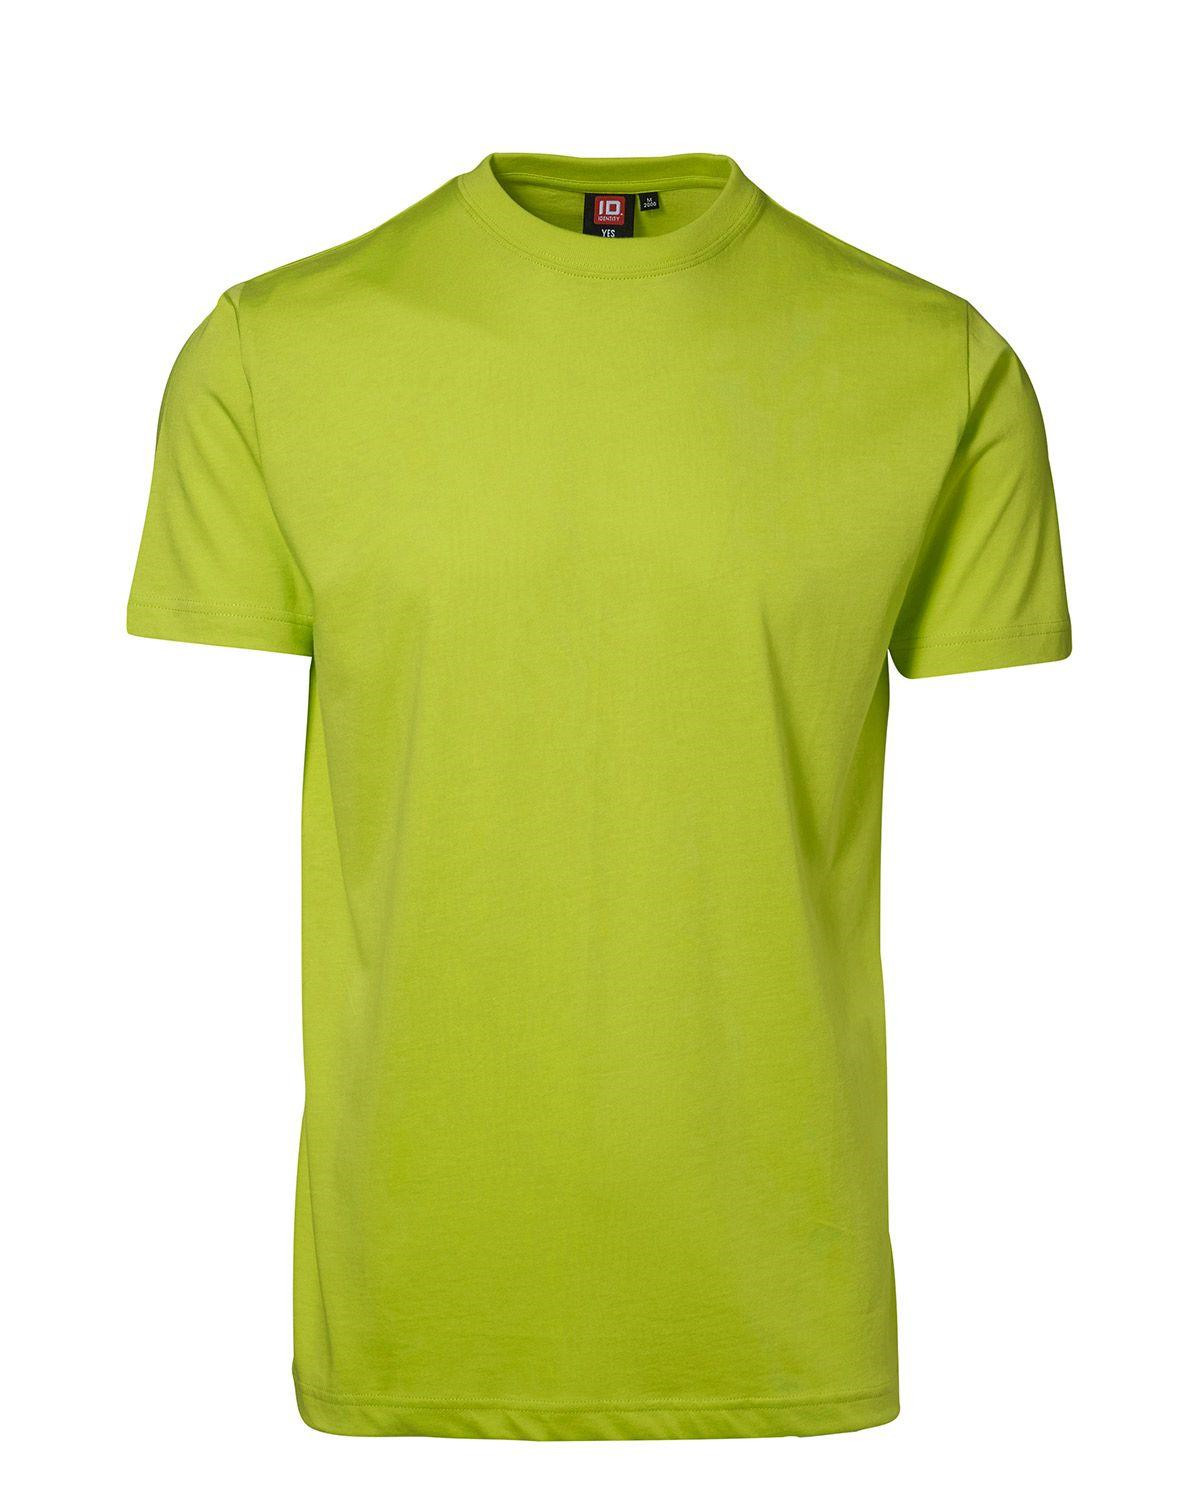 ID YES T-shirt (Lime, XL)